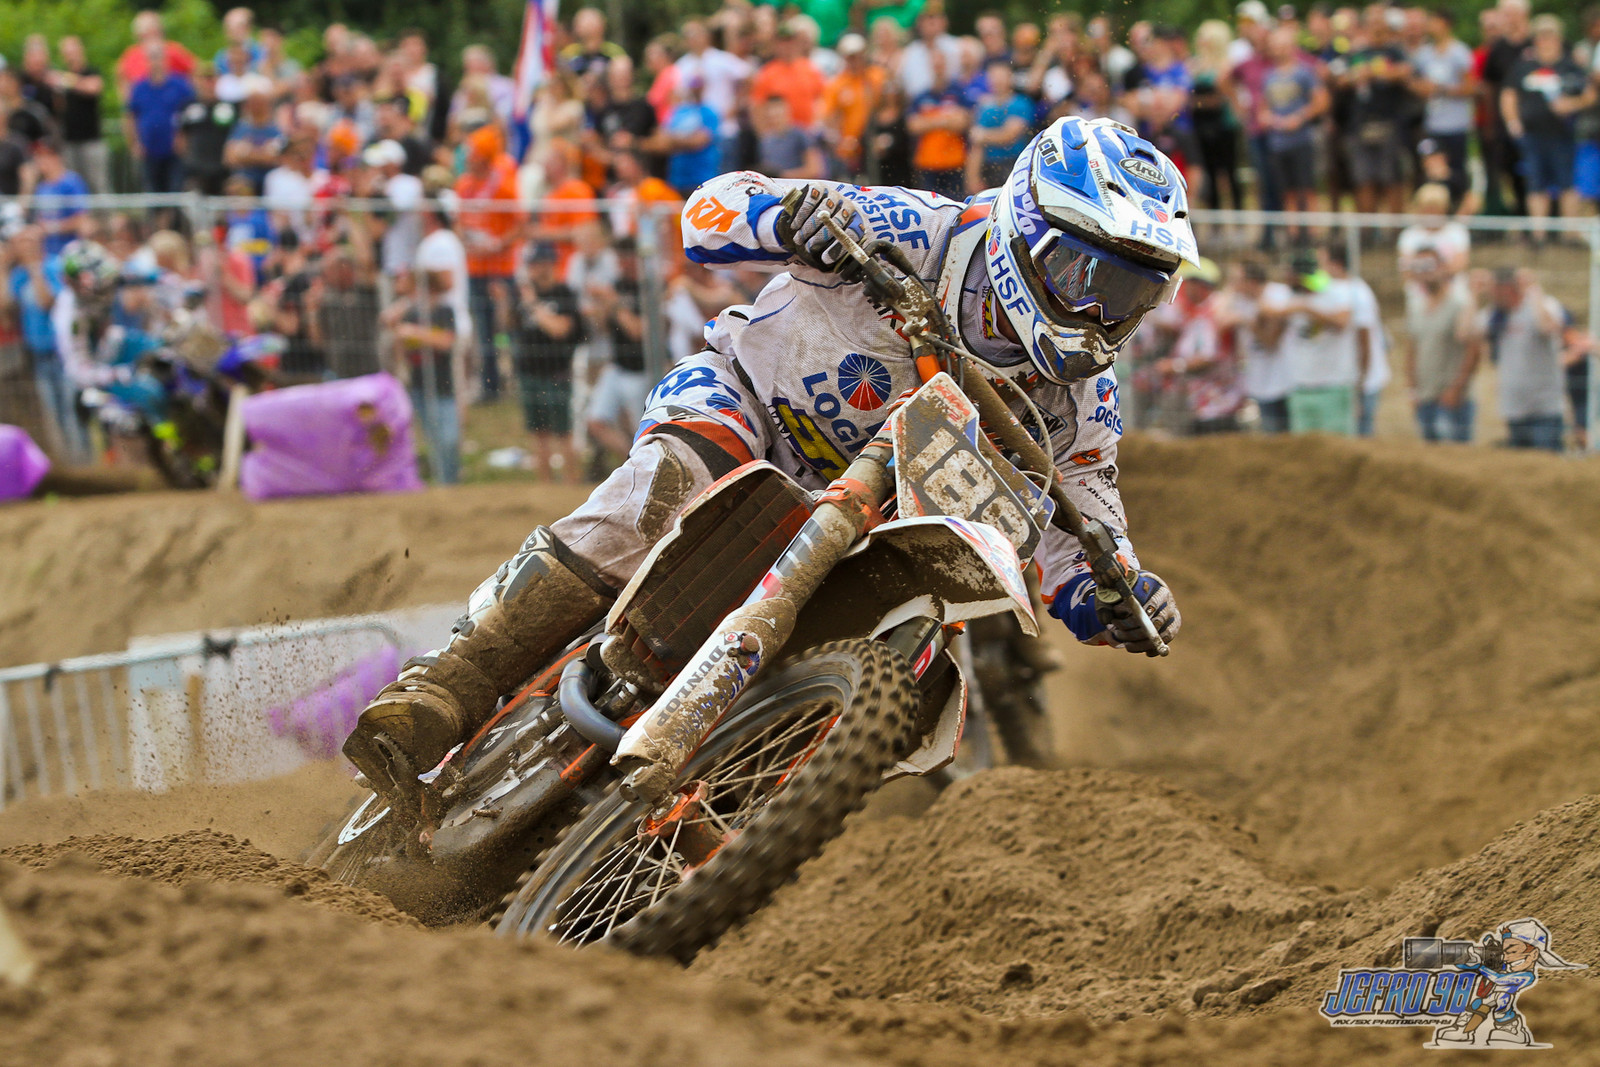 Brian Bogers - Photo Gallery: MXGP of Limburg - Motocross Pictures - Vital MX